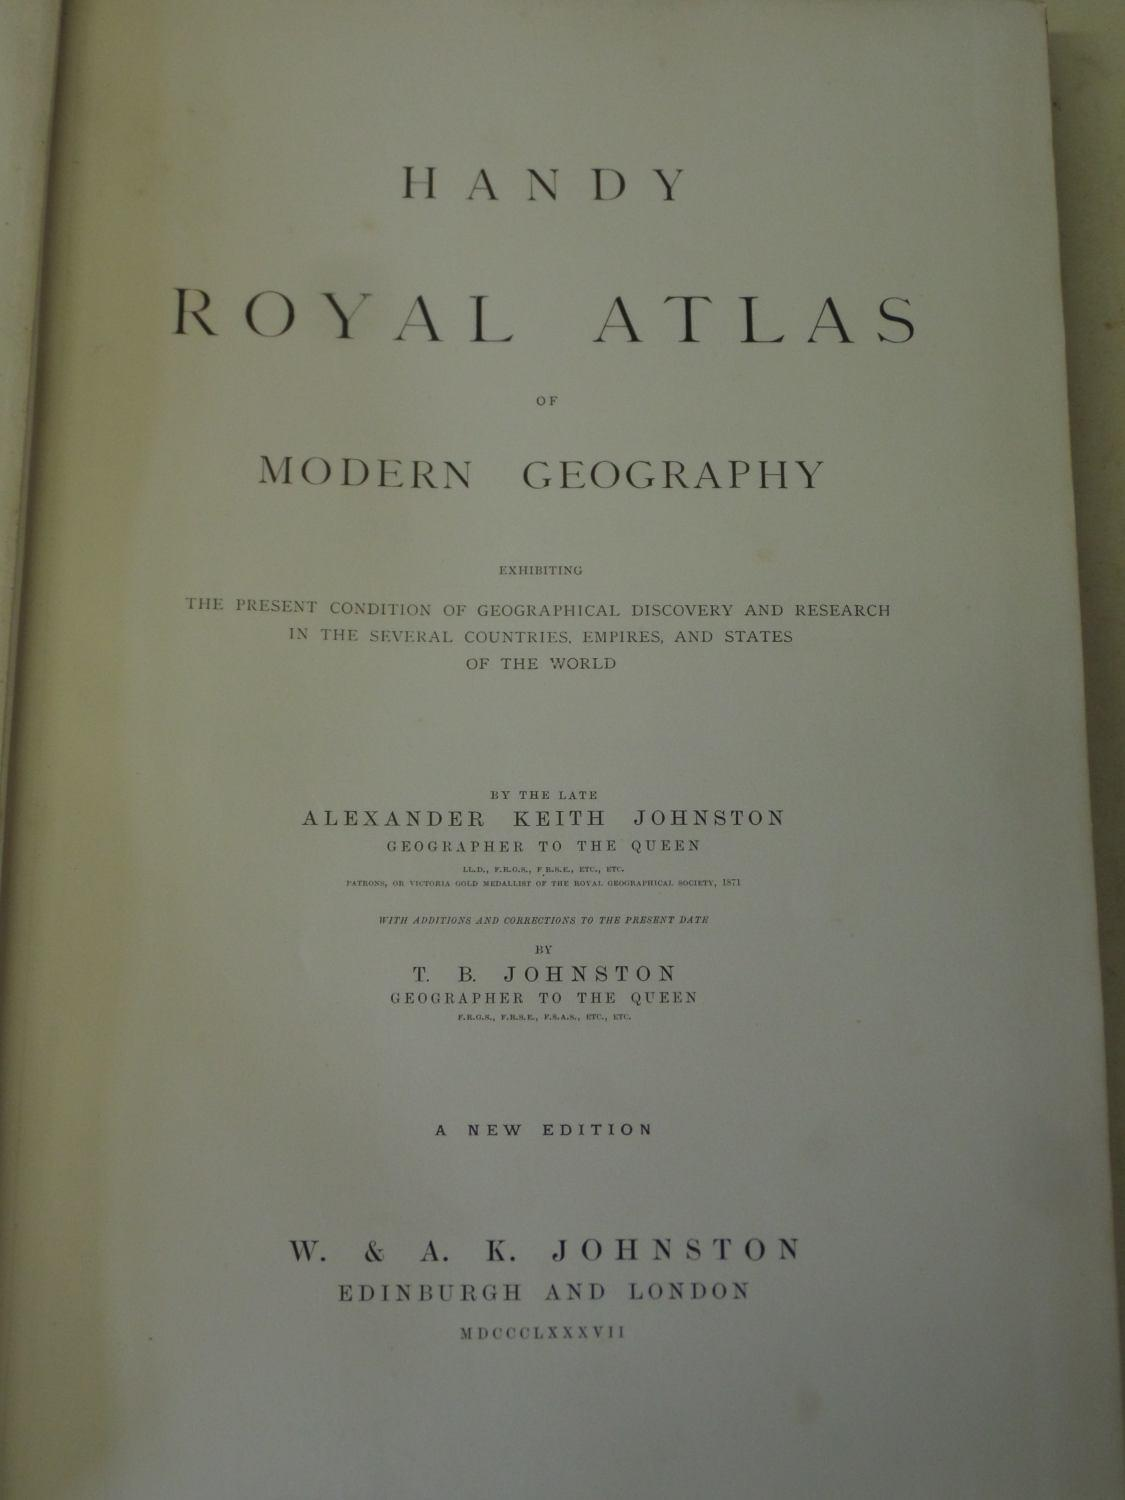 The Handy Royal Atlas of Modern Geography by A. Keith Johnston ...